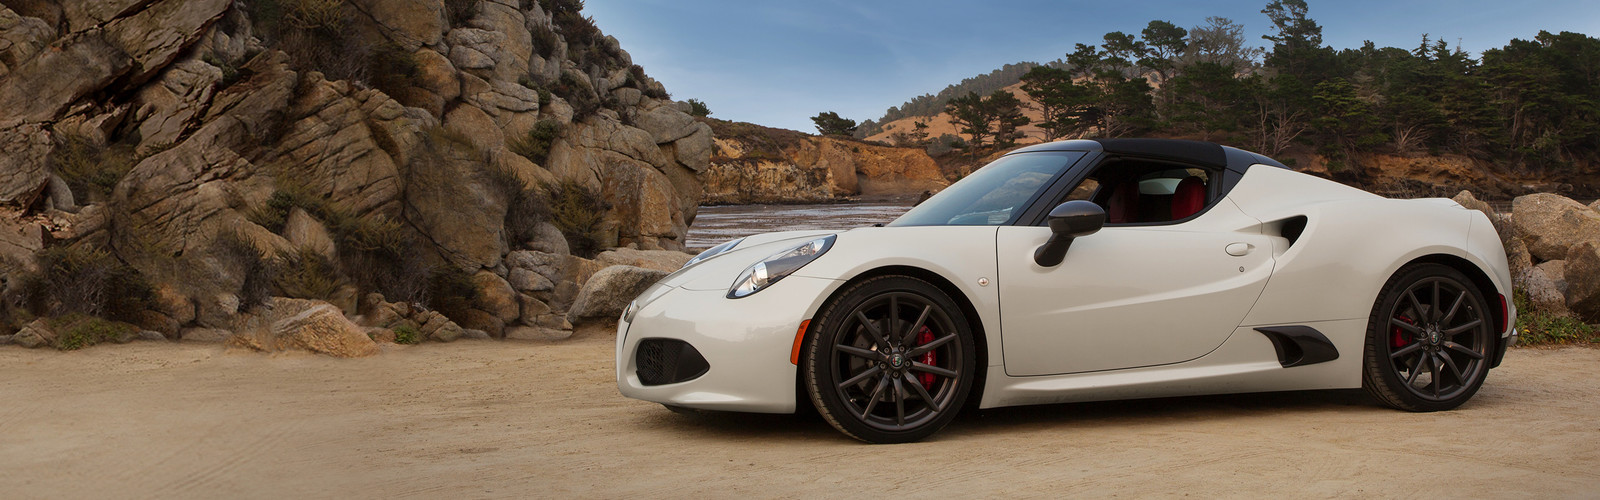 Side view of the white 2019 Alfa Romeo 4C Spider parked on a dirt-covered field besides rocks